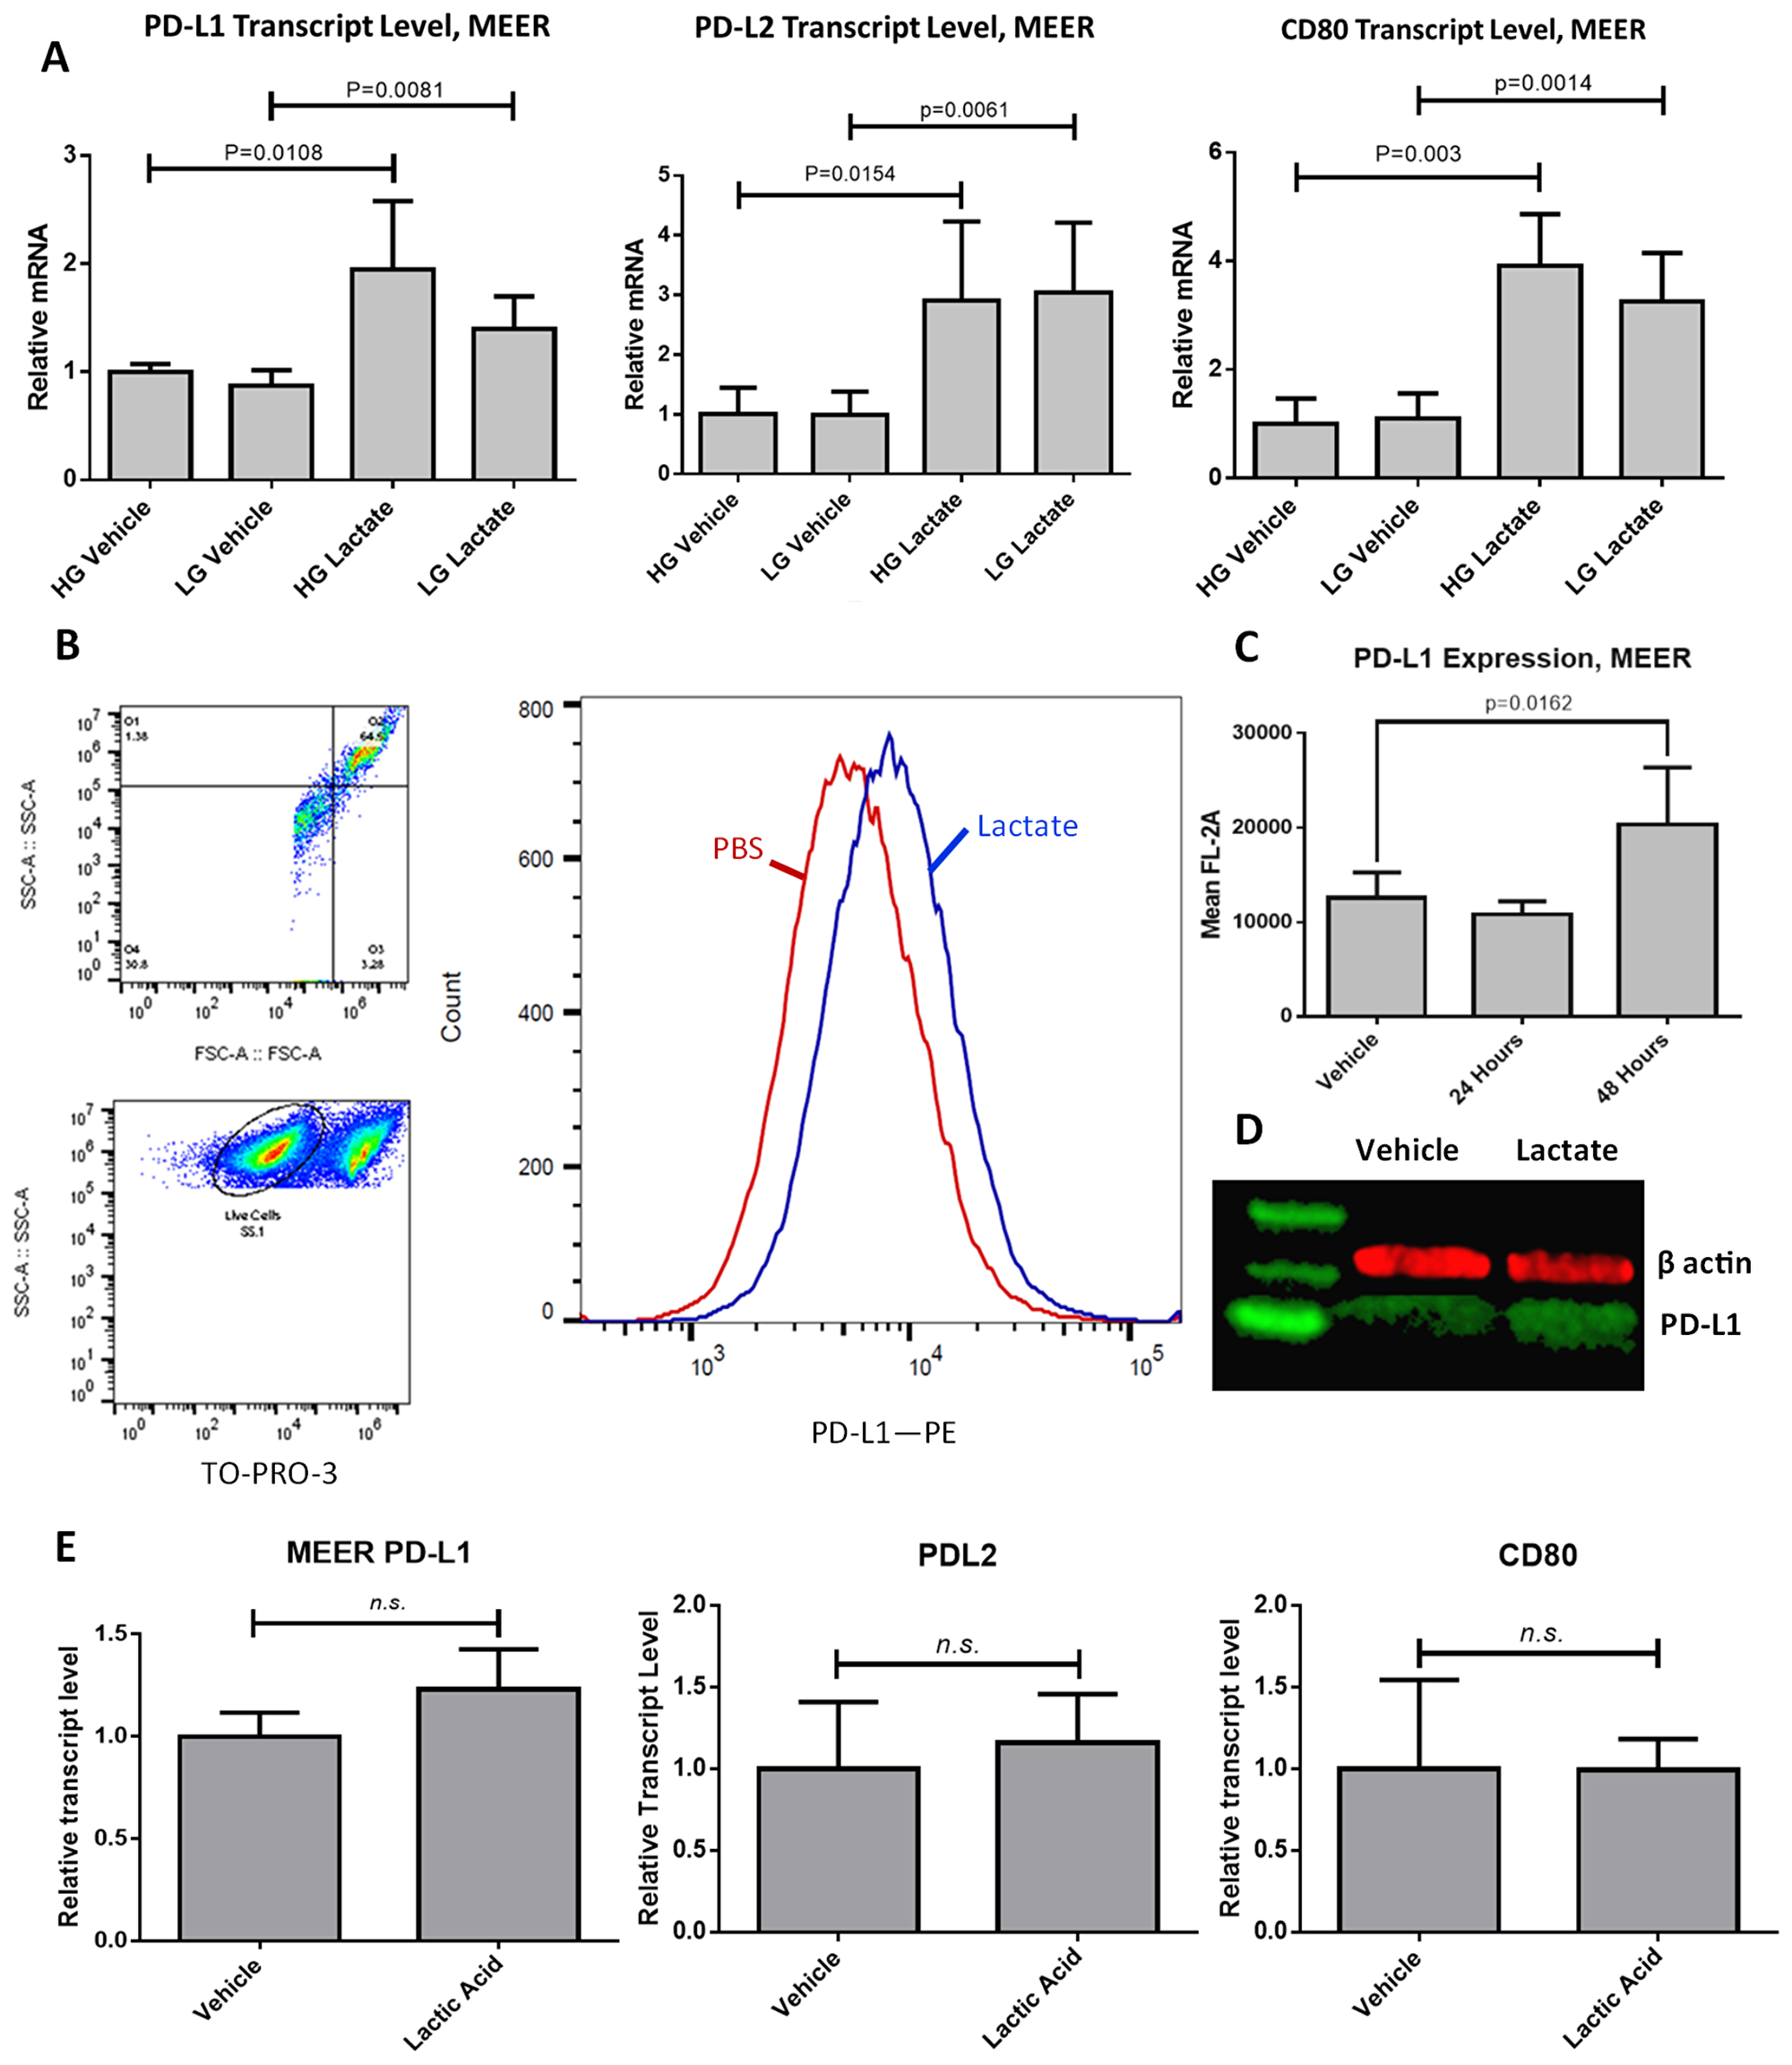 PD-L1 is upregulated in response to lactate exposure in MEER cells.